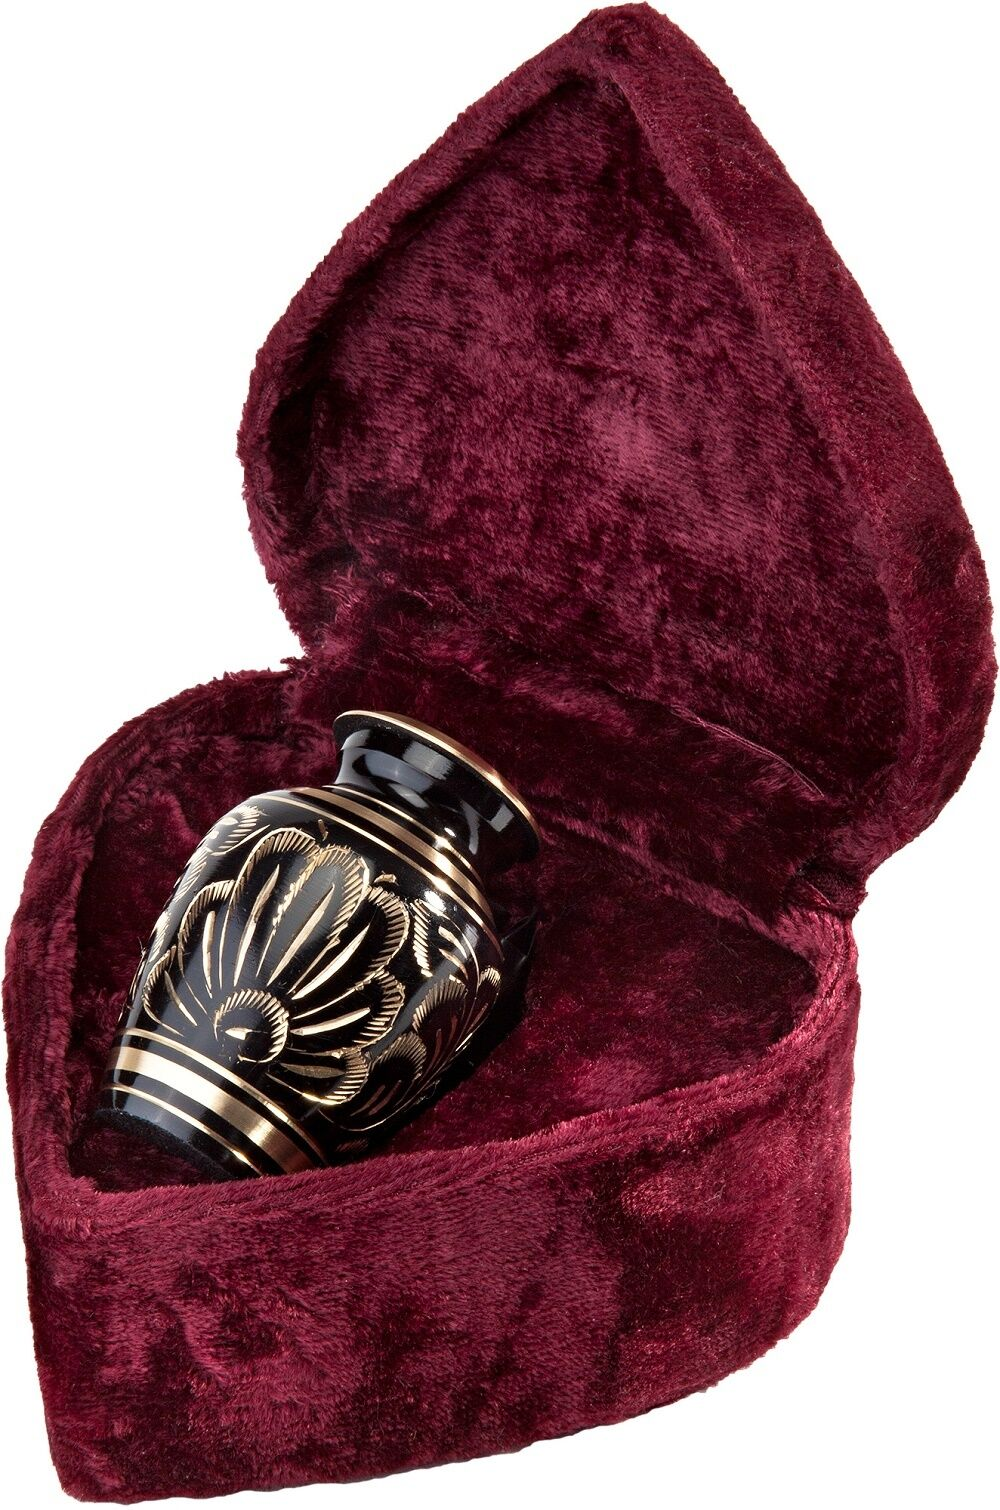 Black and Gold Color, Brass Funeral Cremation Urn Keepsake w. Velvet Heart Box